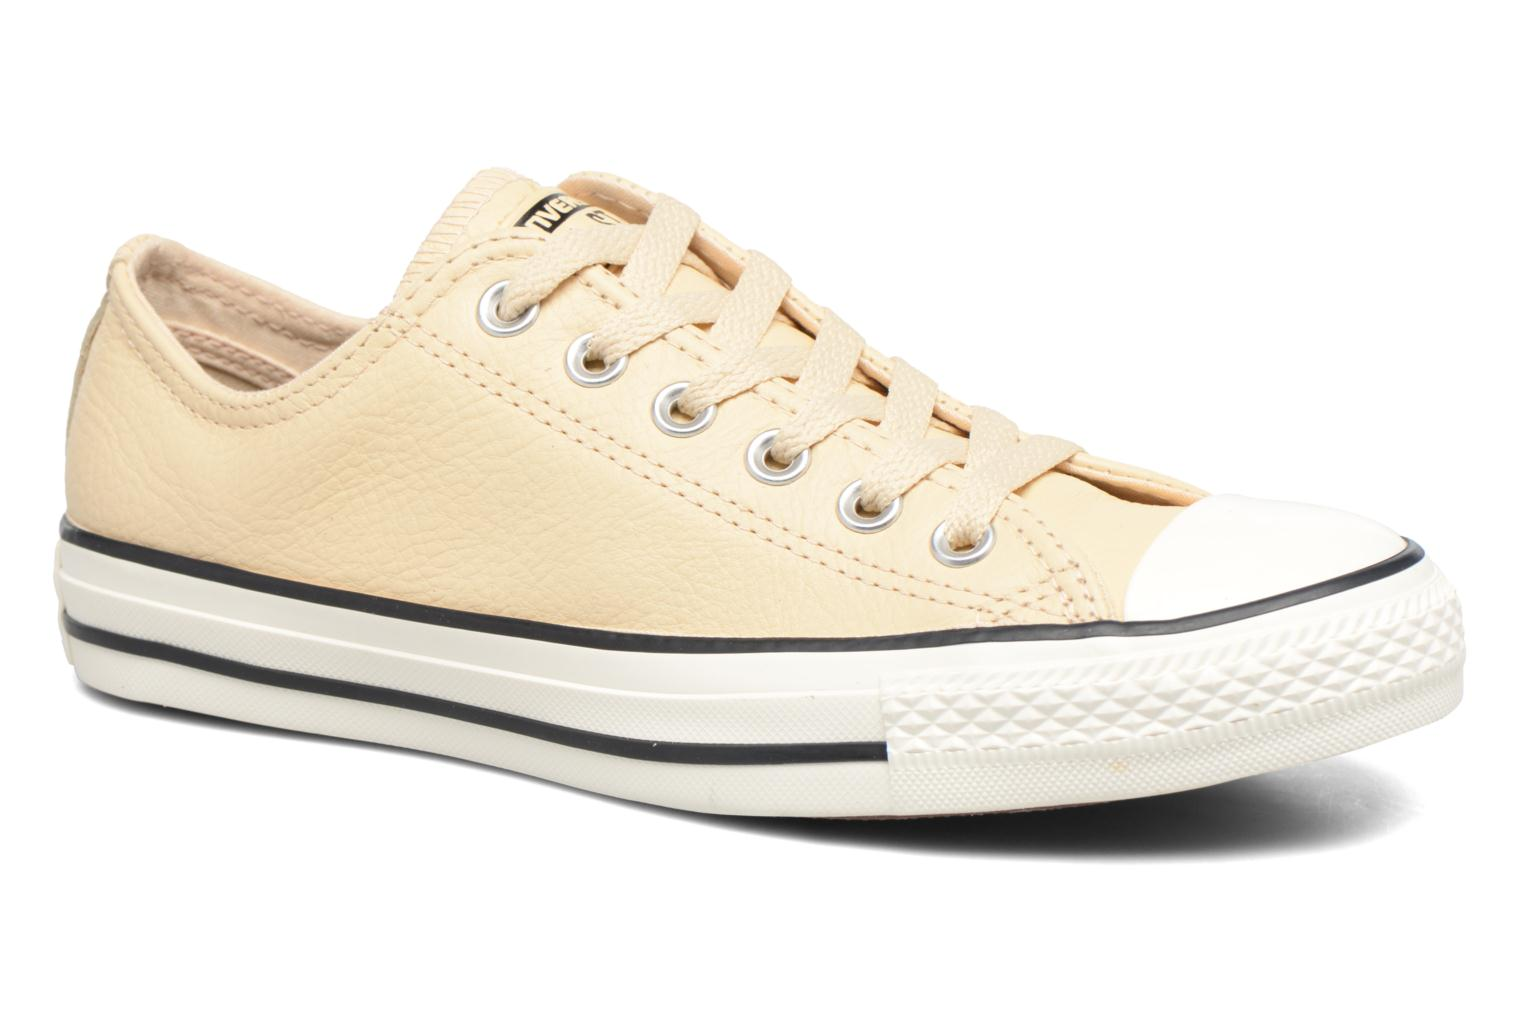 Chuck Taylor All Star Tumbled Leather Ox by Converse